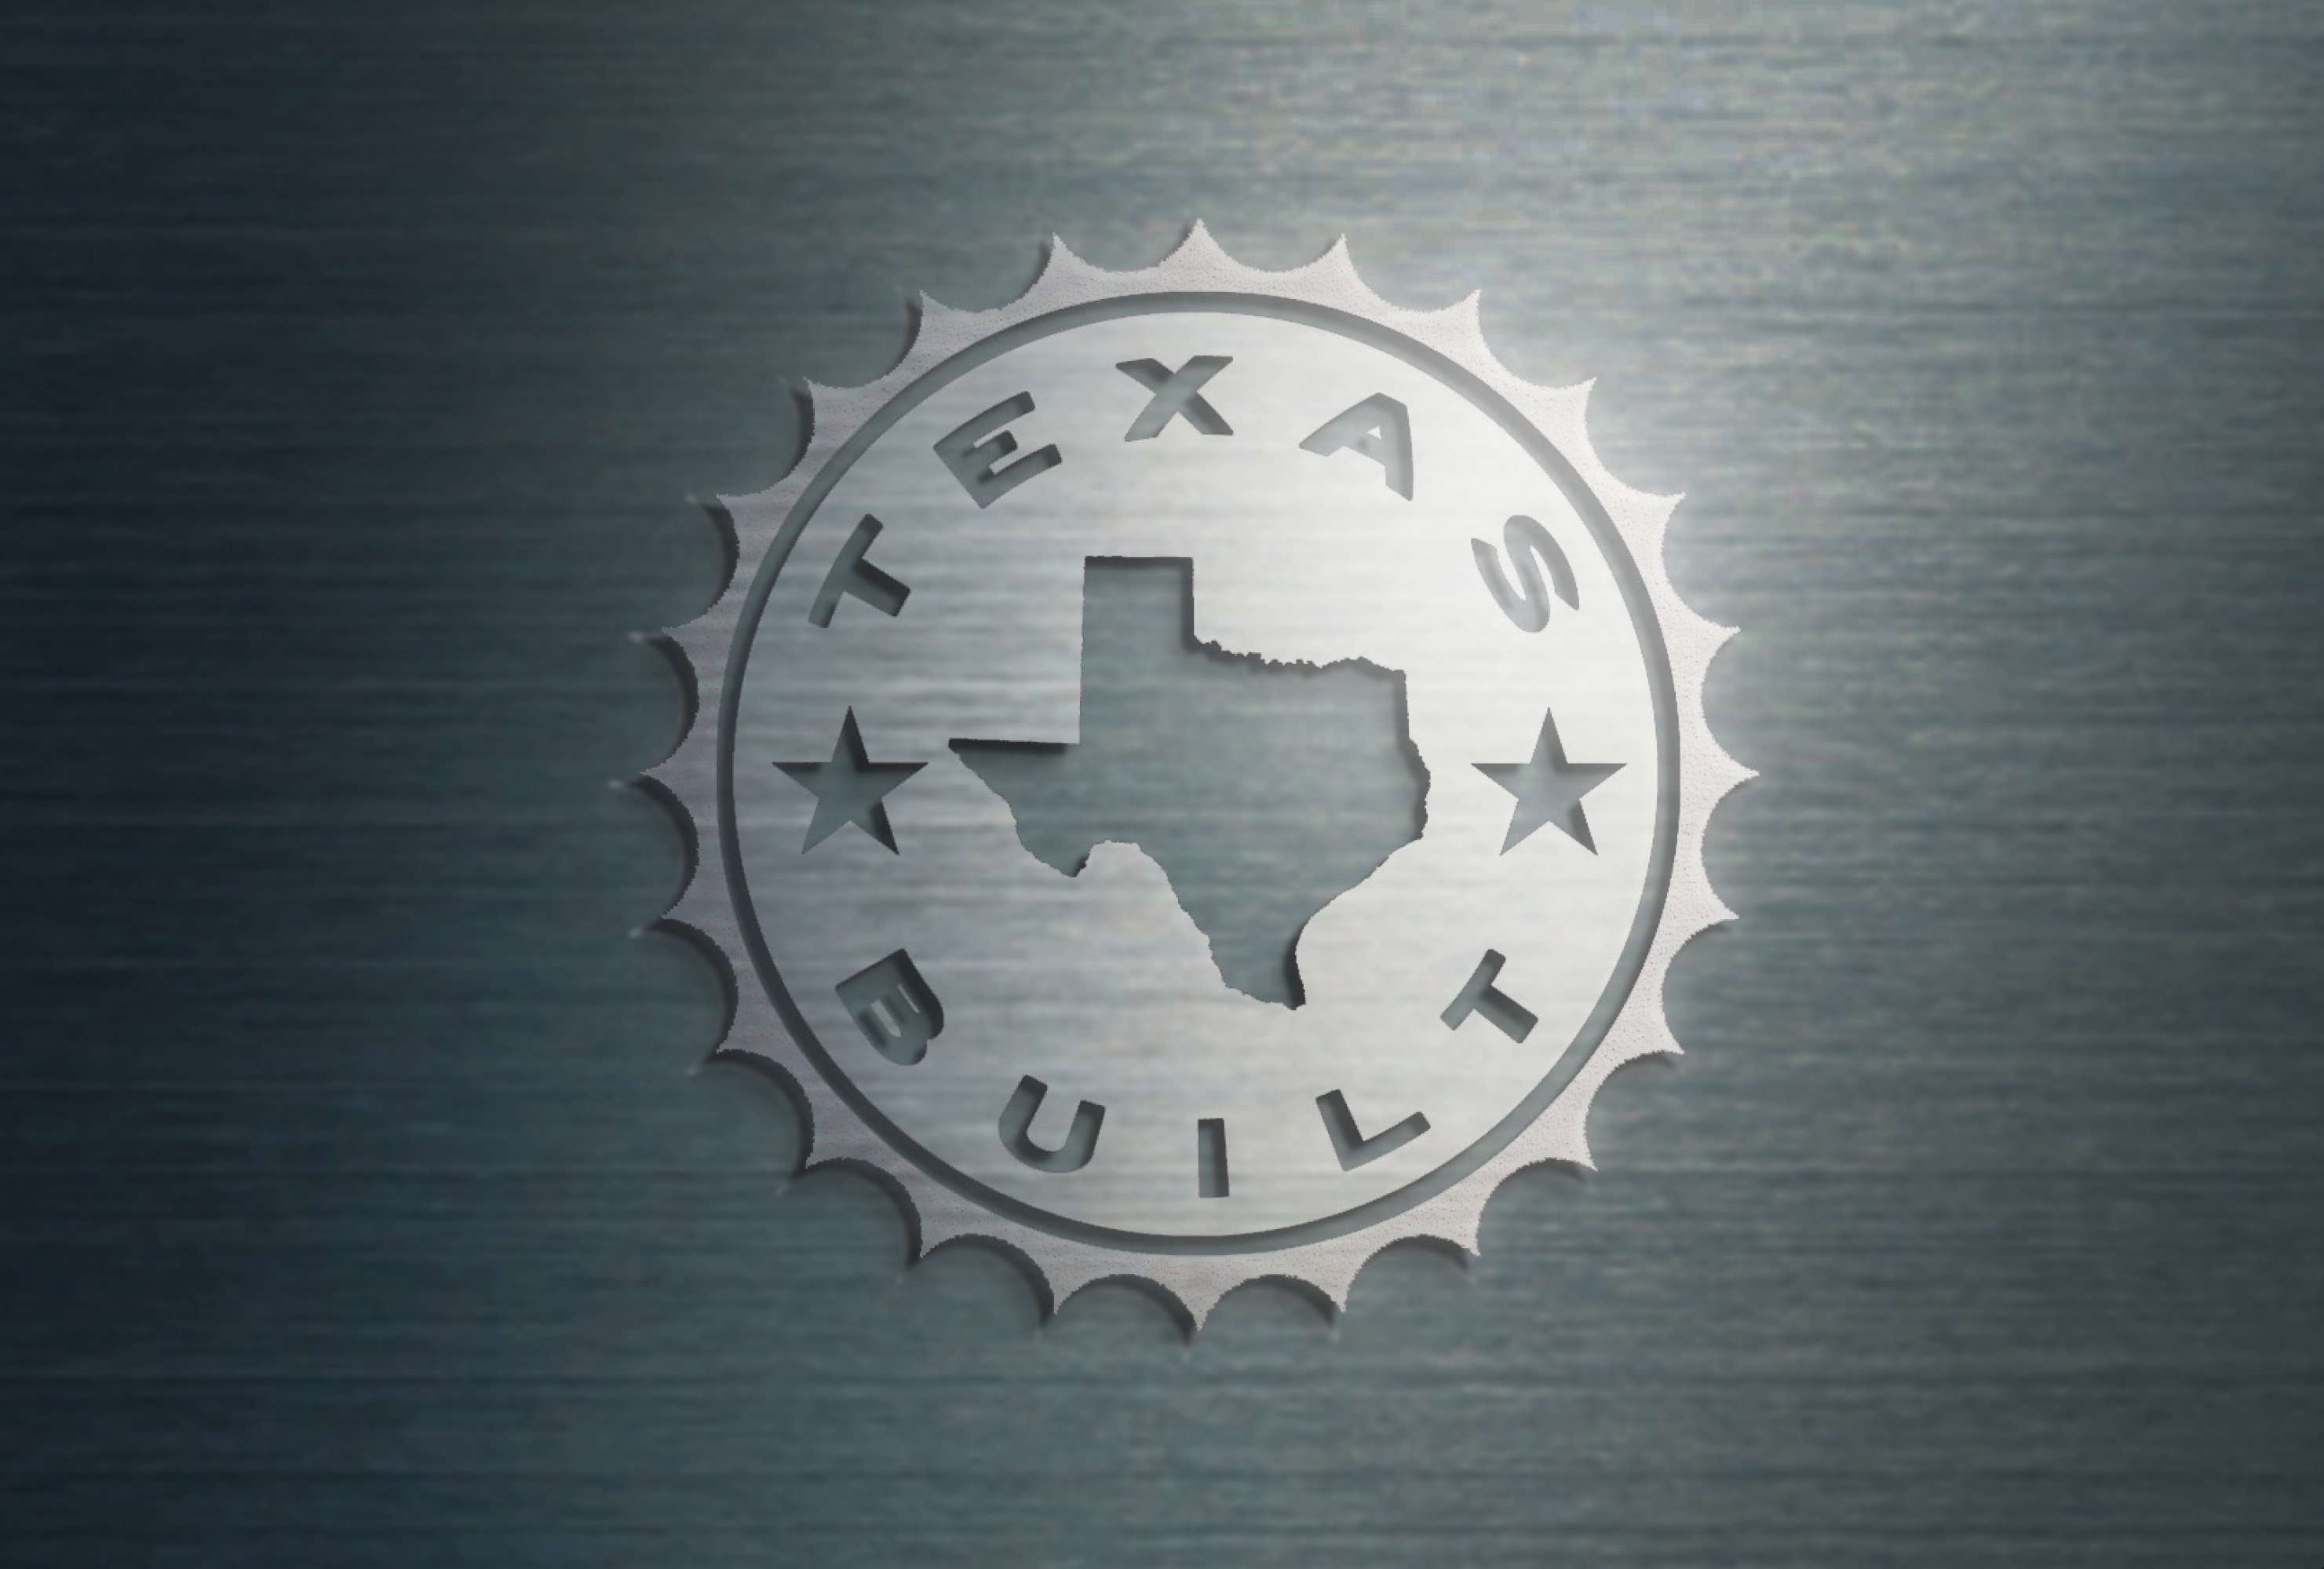 TUNDRA MADE IN TEXAS LOGO